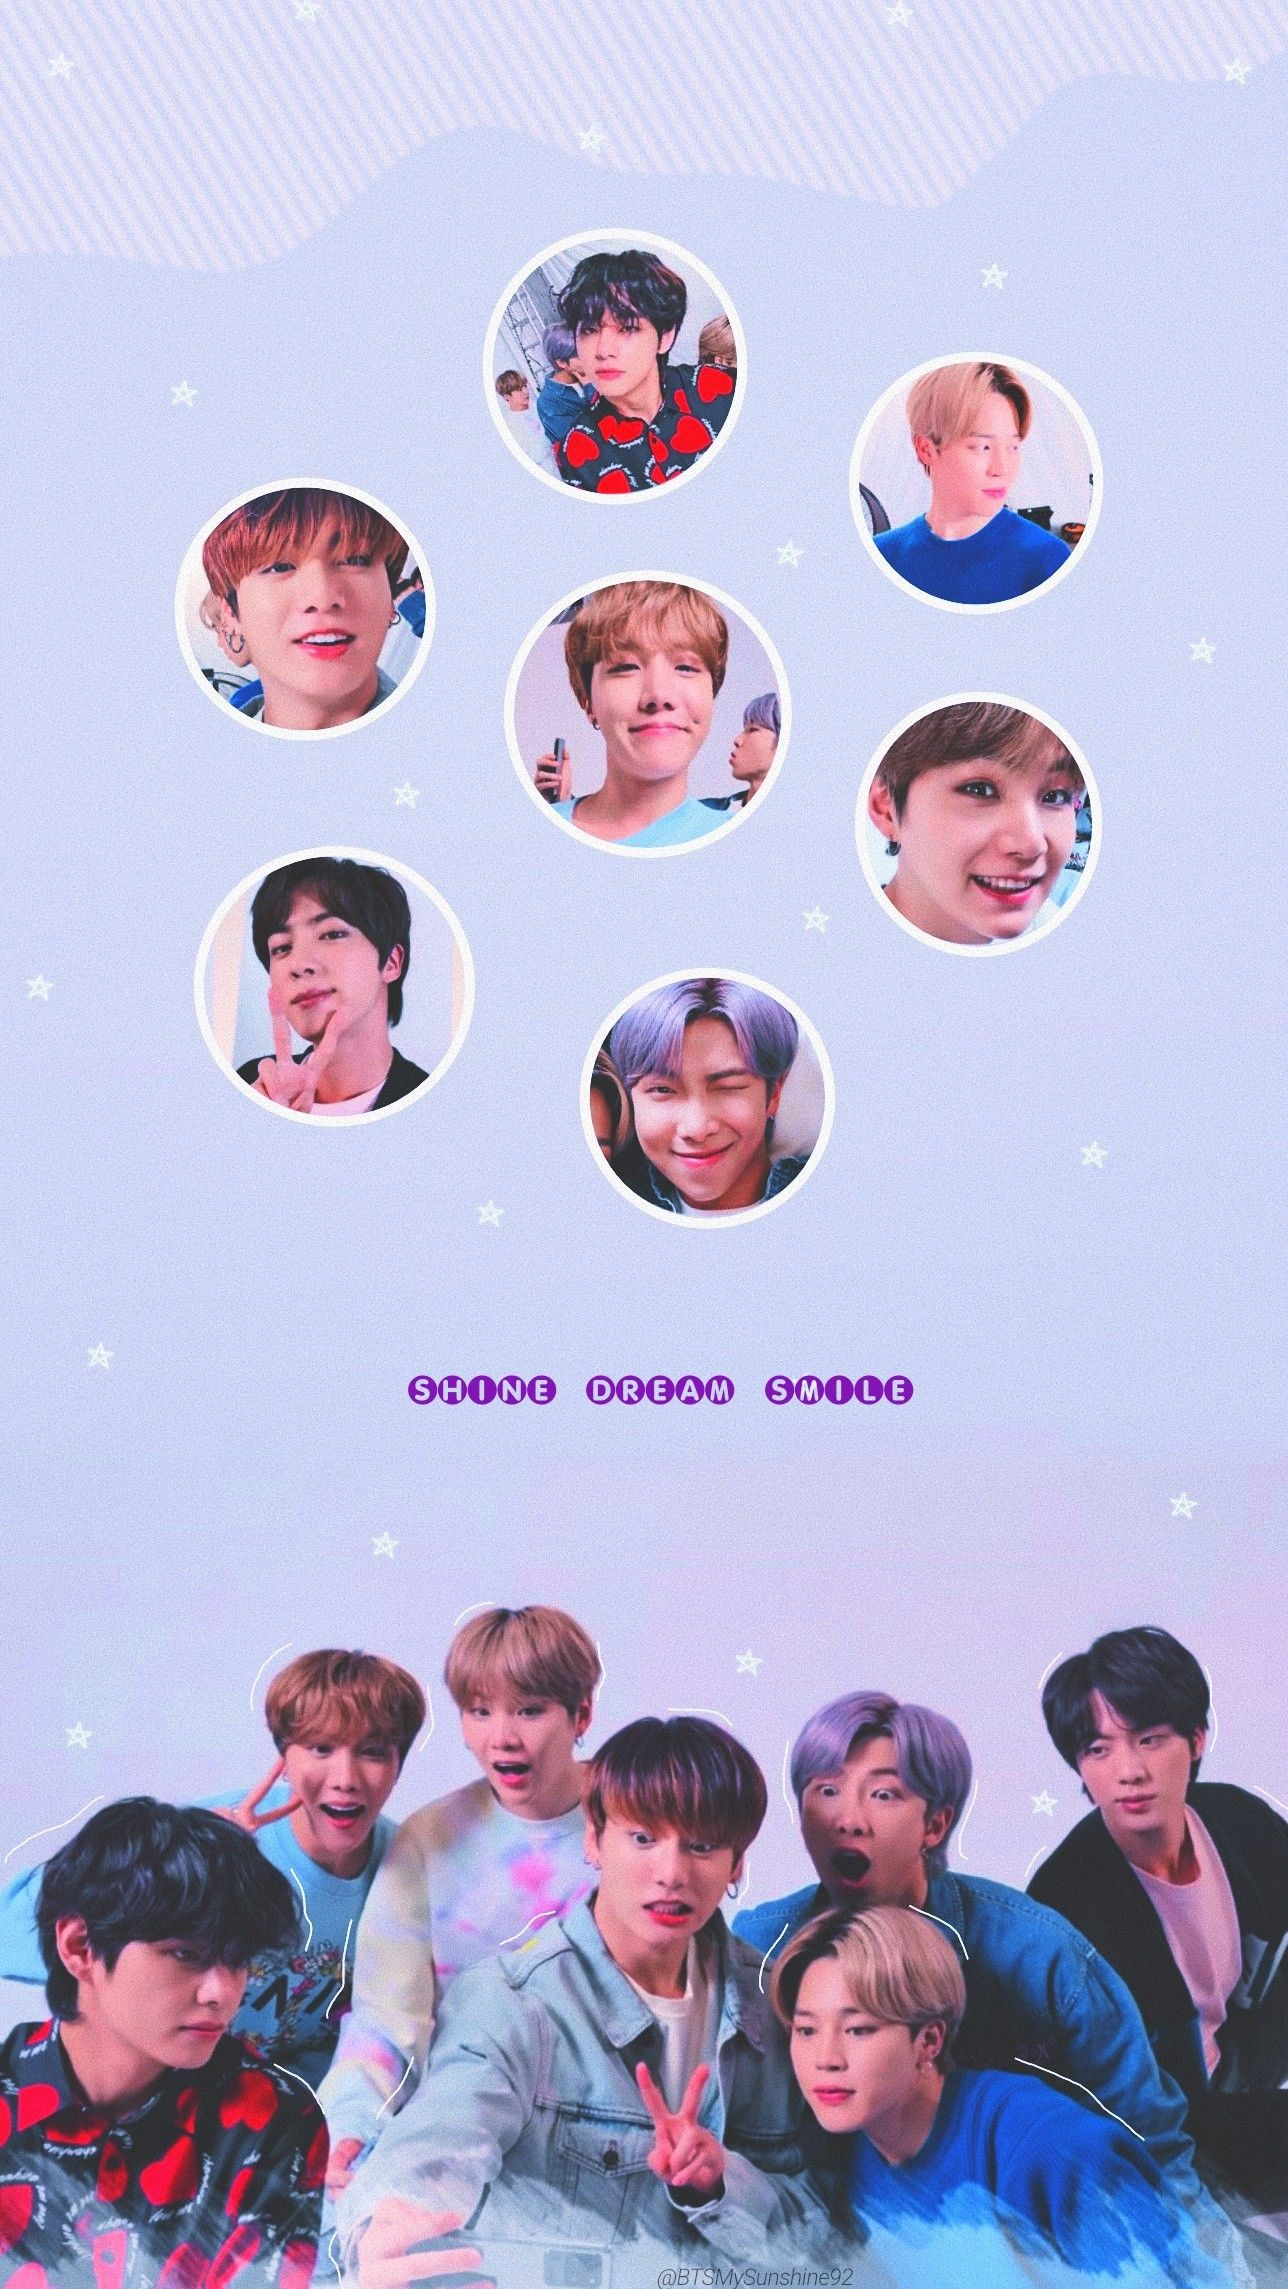 Samsung Galaxy X Bts Di 2020 Wallpaper Ponsel Bts Ponsel